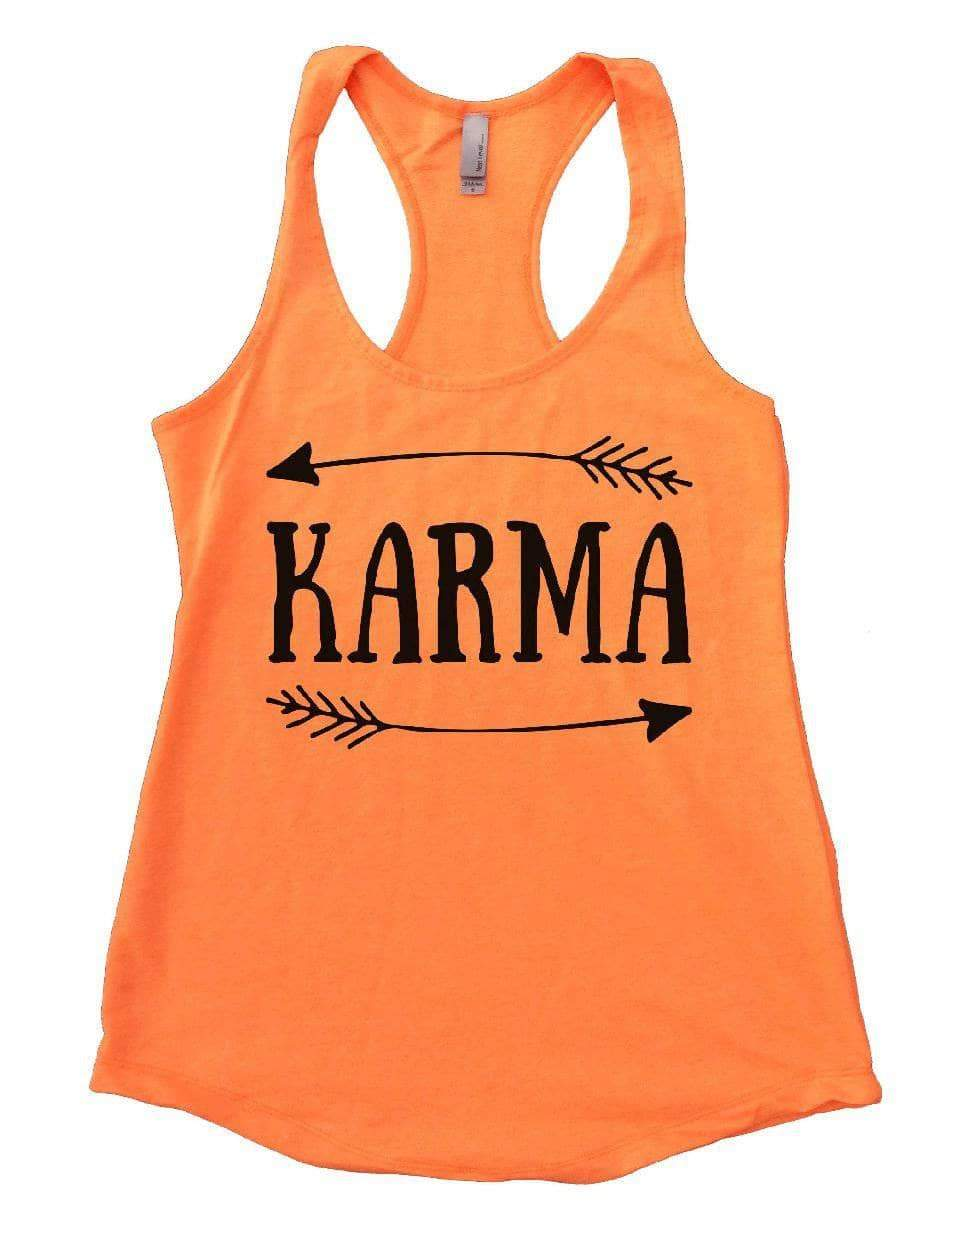 KARMA Womens Workout Tank Top Small Womens Tank Tops Neon Orange